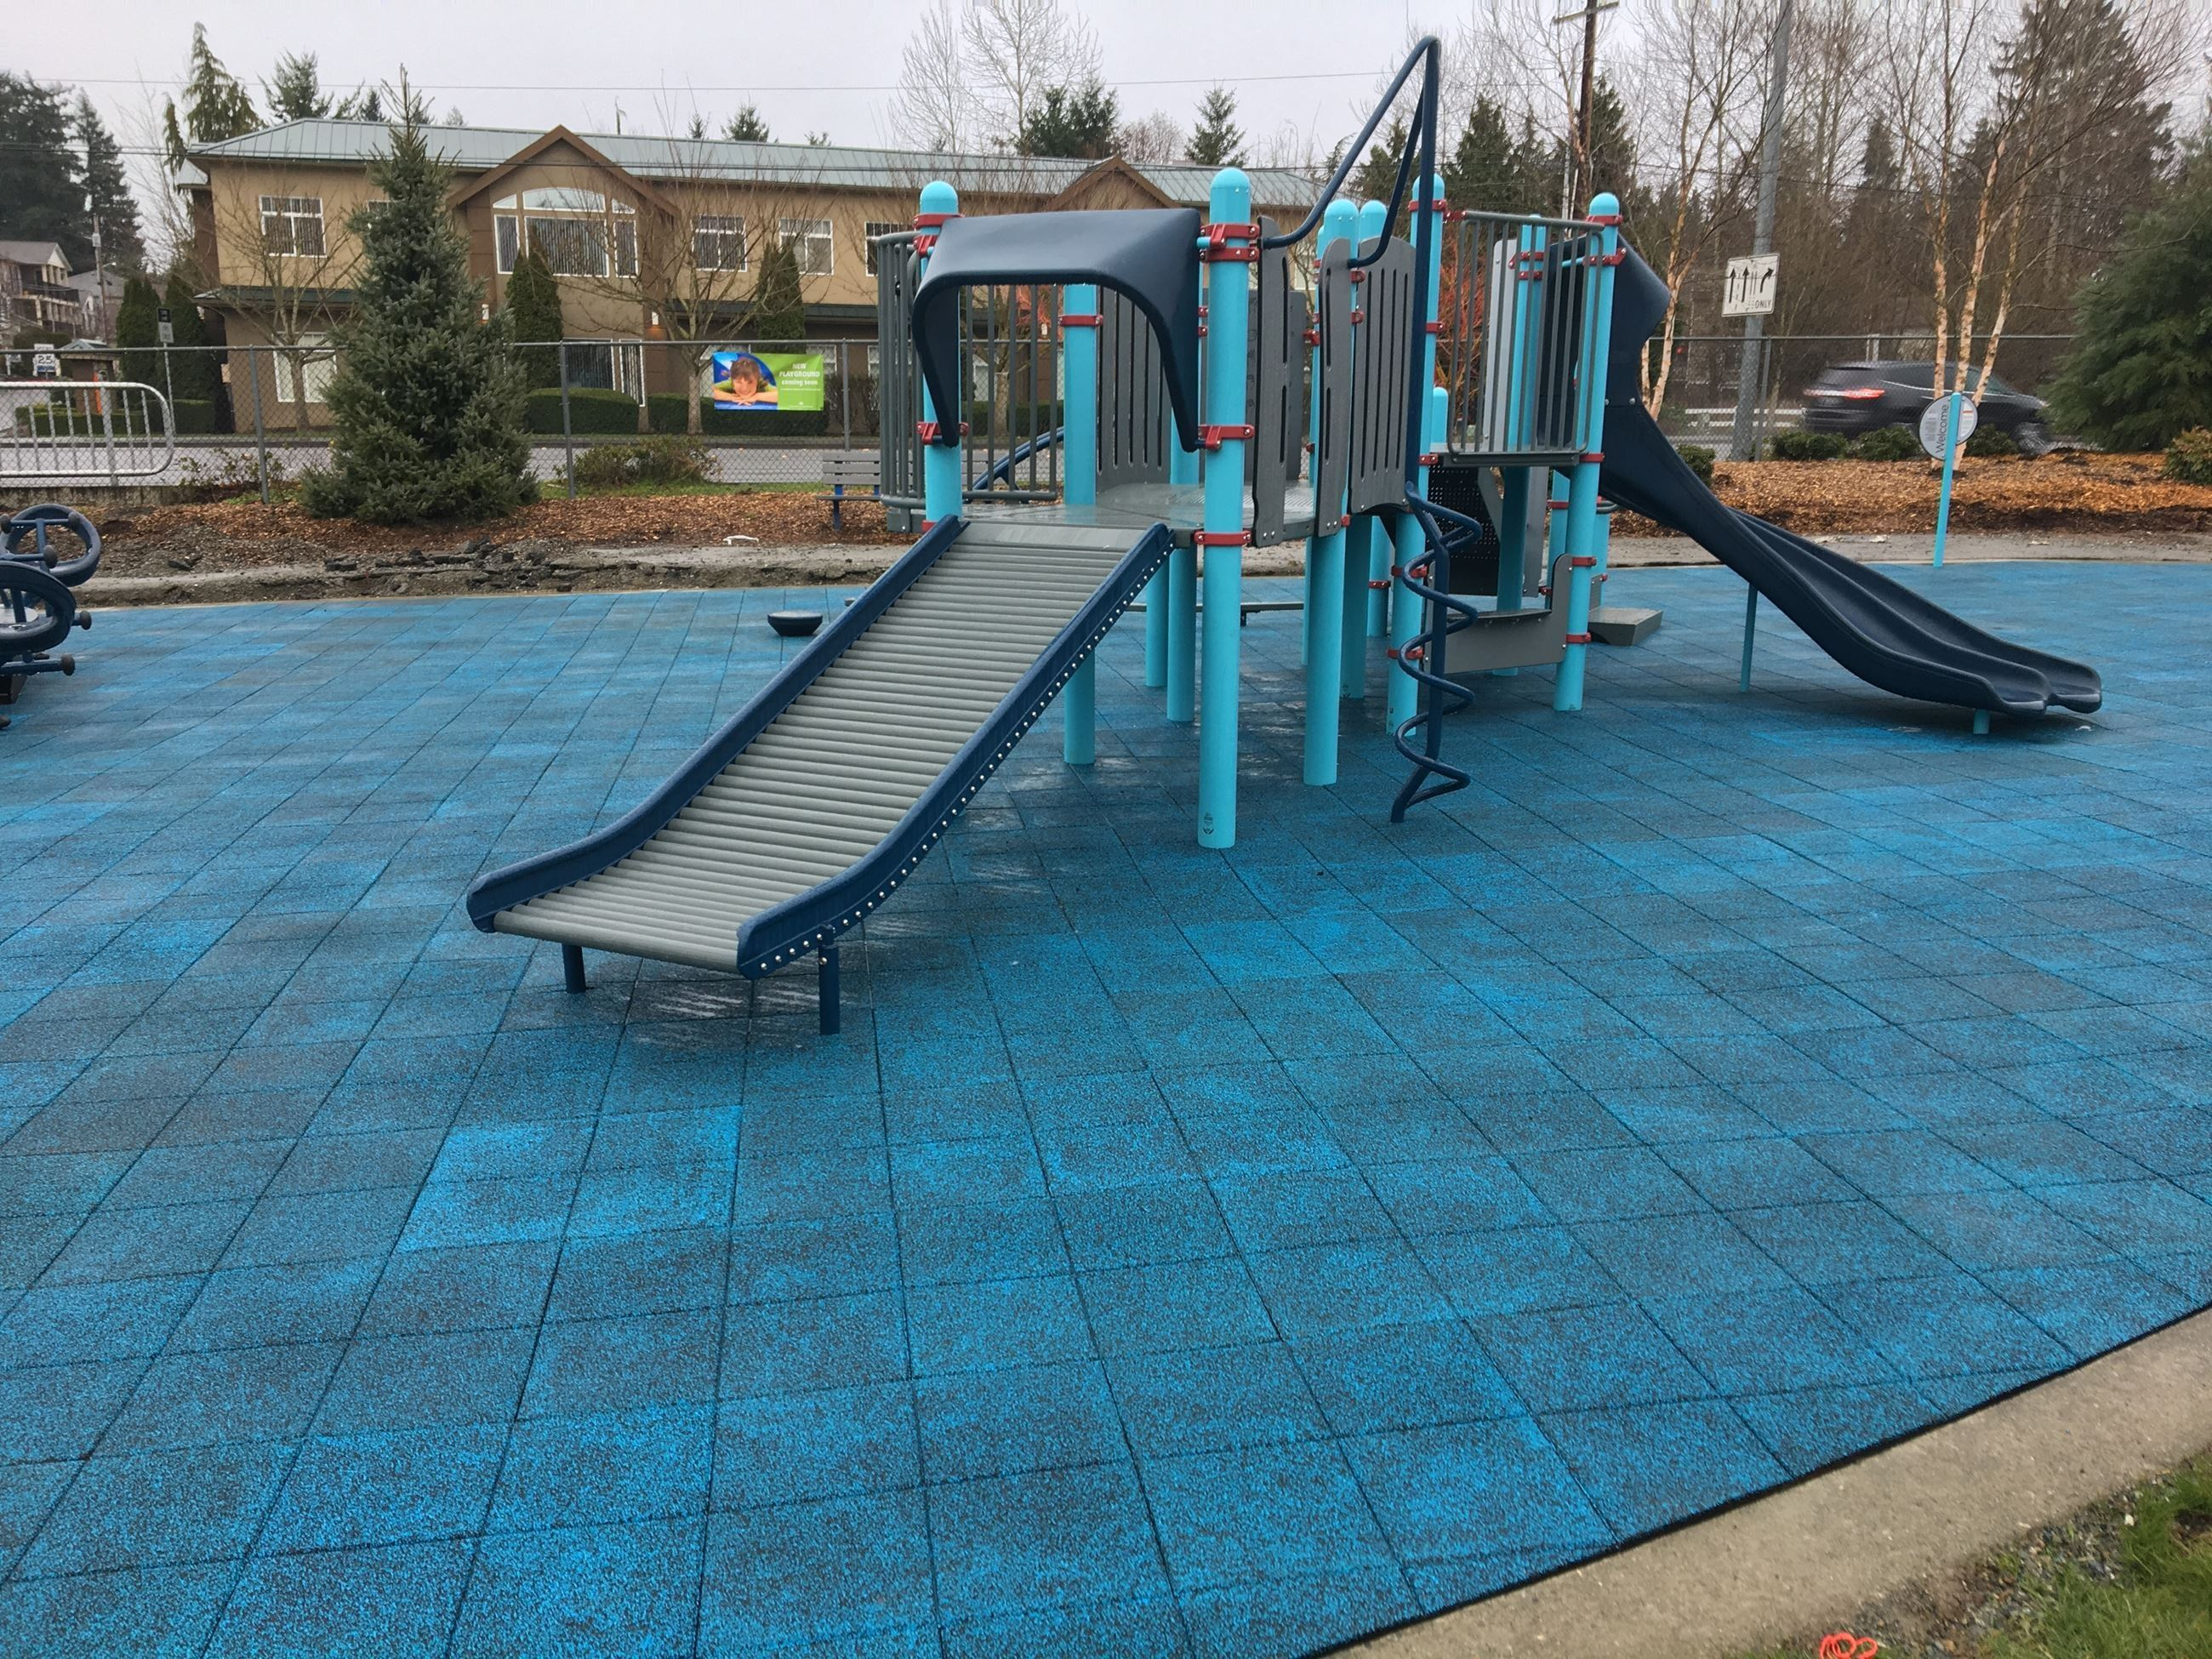 Blue playground tiles at Hauge Homestead Park